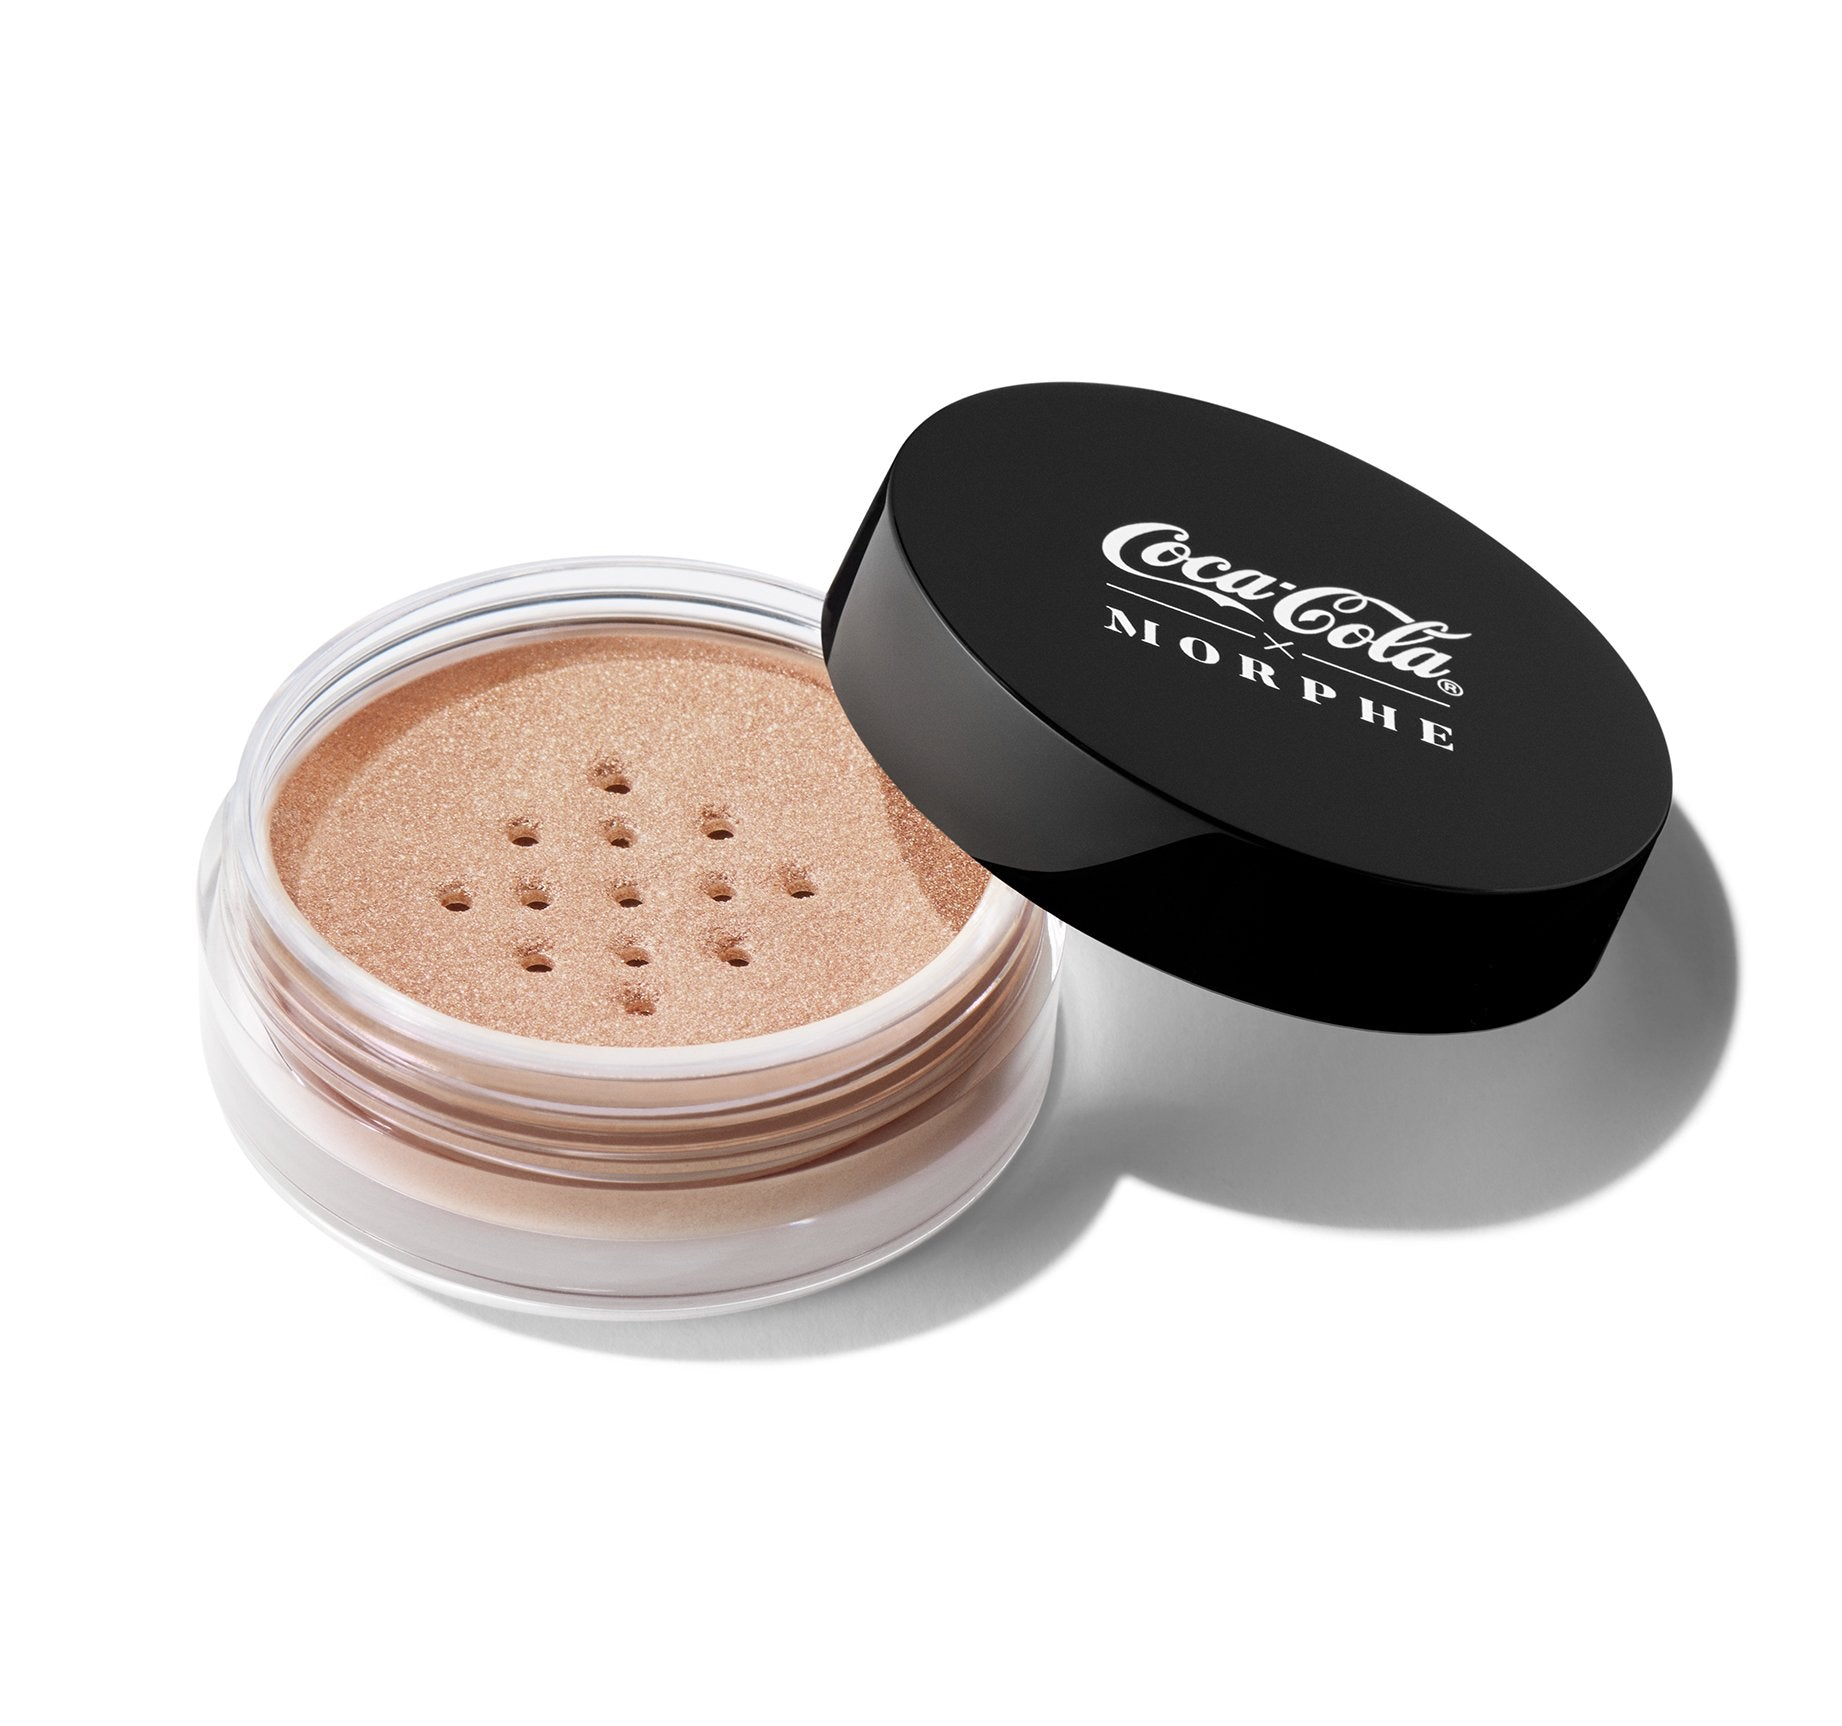 COCA-COLA X MORPHE GLOWING PLACES LOOSE HIGHLIGHTER - POP IT, view larger image